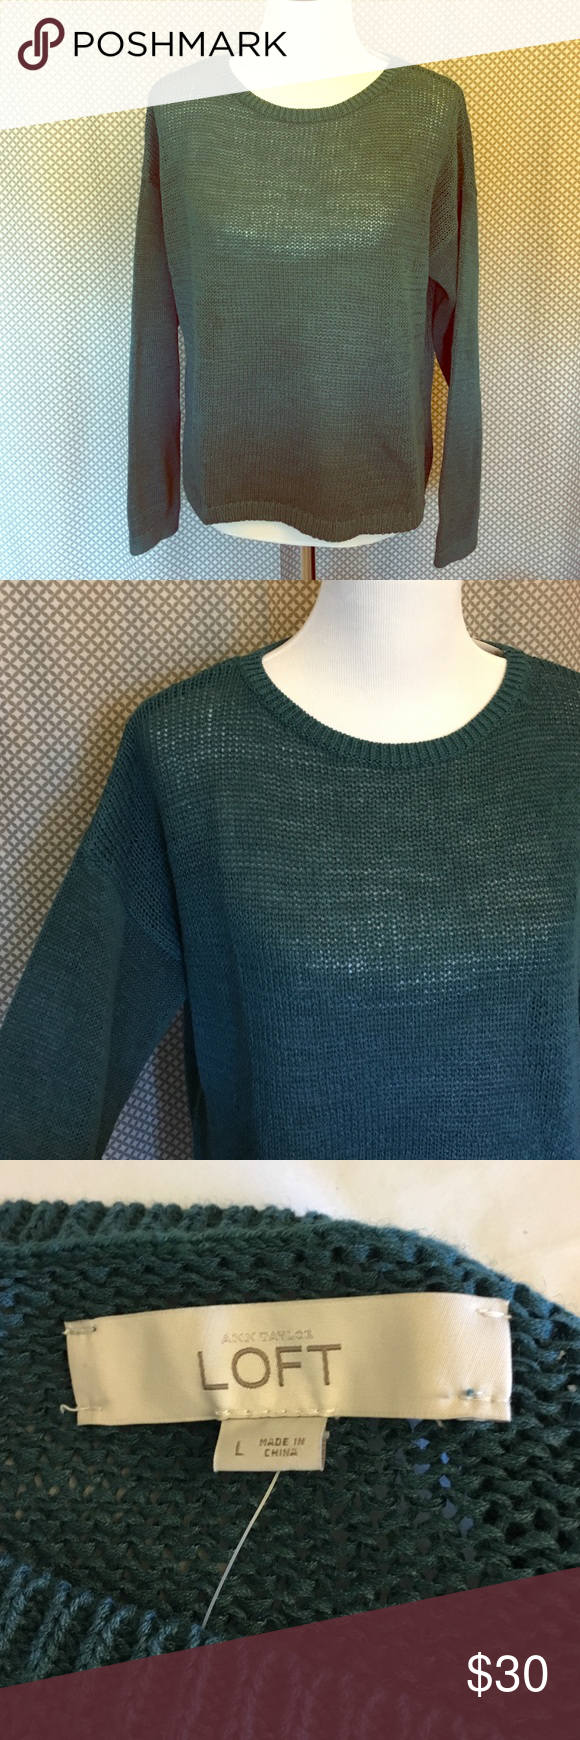 LOFT Slouchy Sweater Transition to fall with this casual slouchy sweater. Layer with a camisole. NWT. Happy to offer bundle discounts! 💗 LOFT Sweaters Crew & Scoop Necks